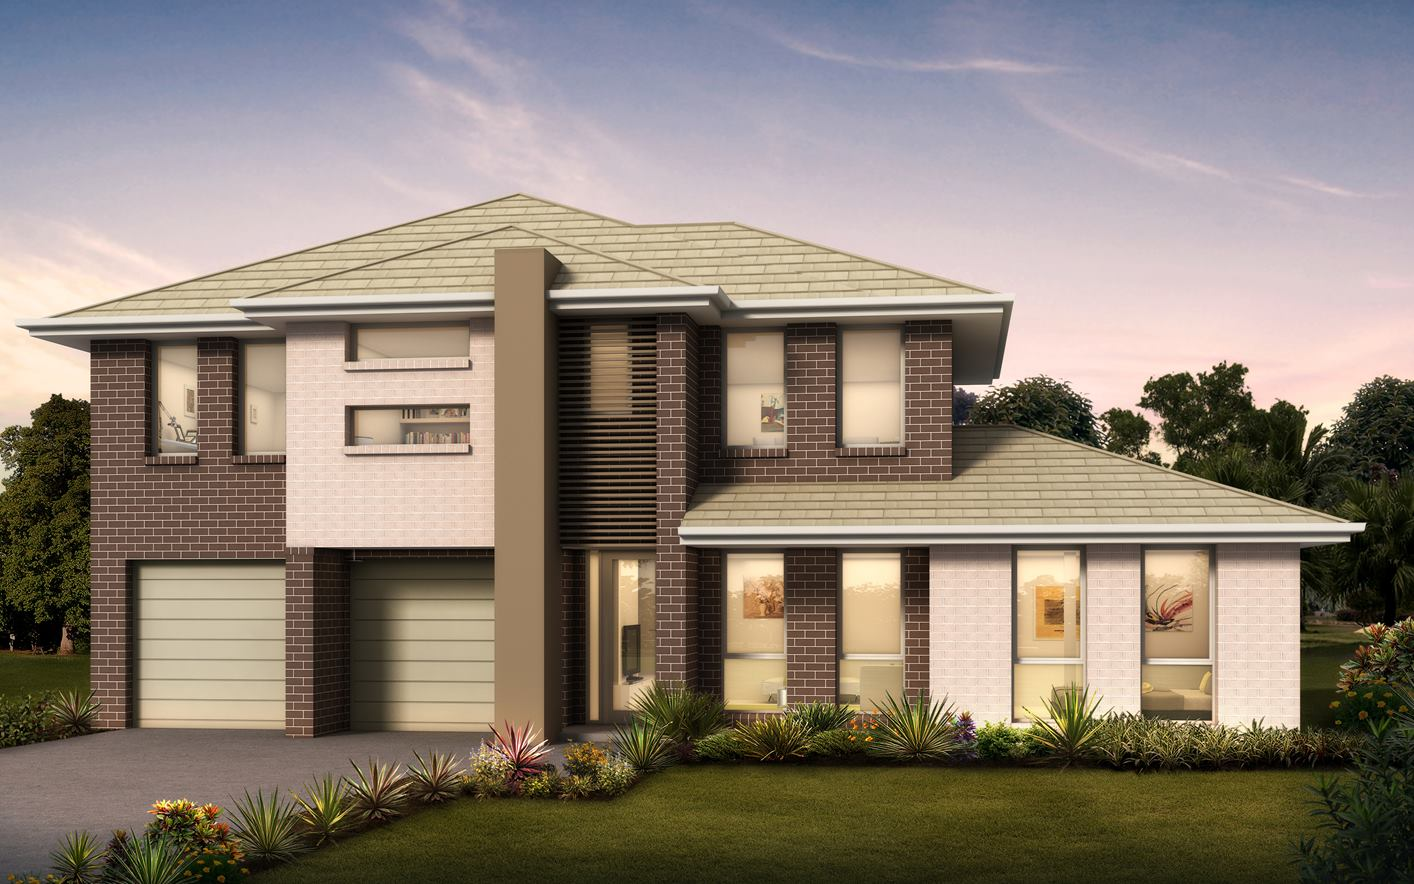 Medway Home Design with Trend Facade